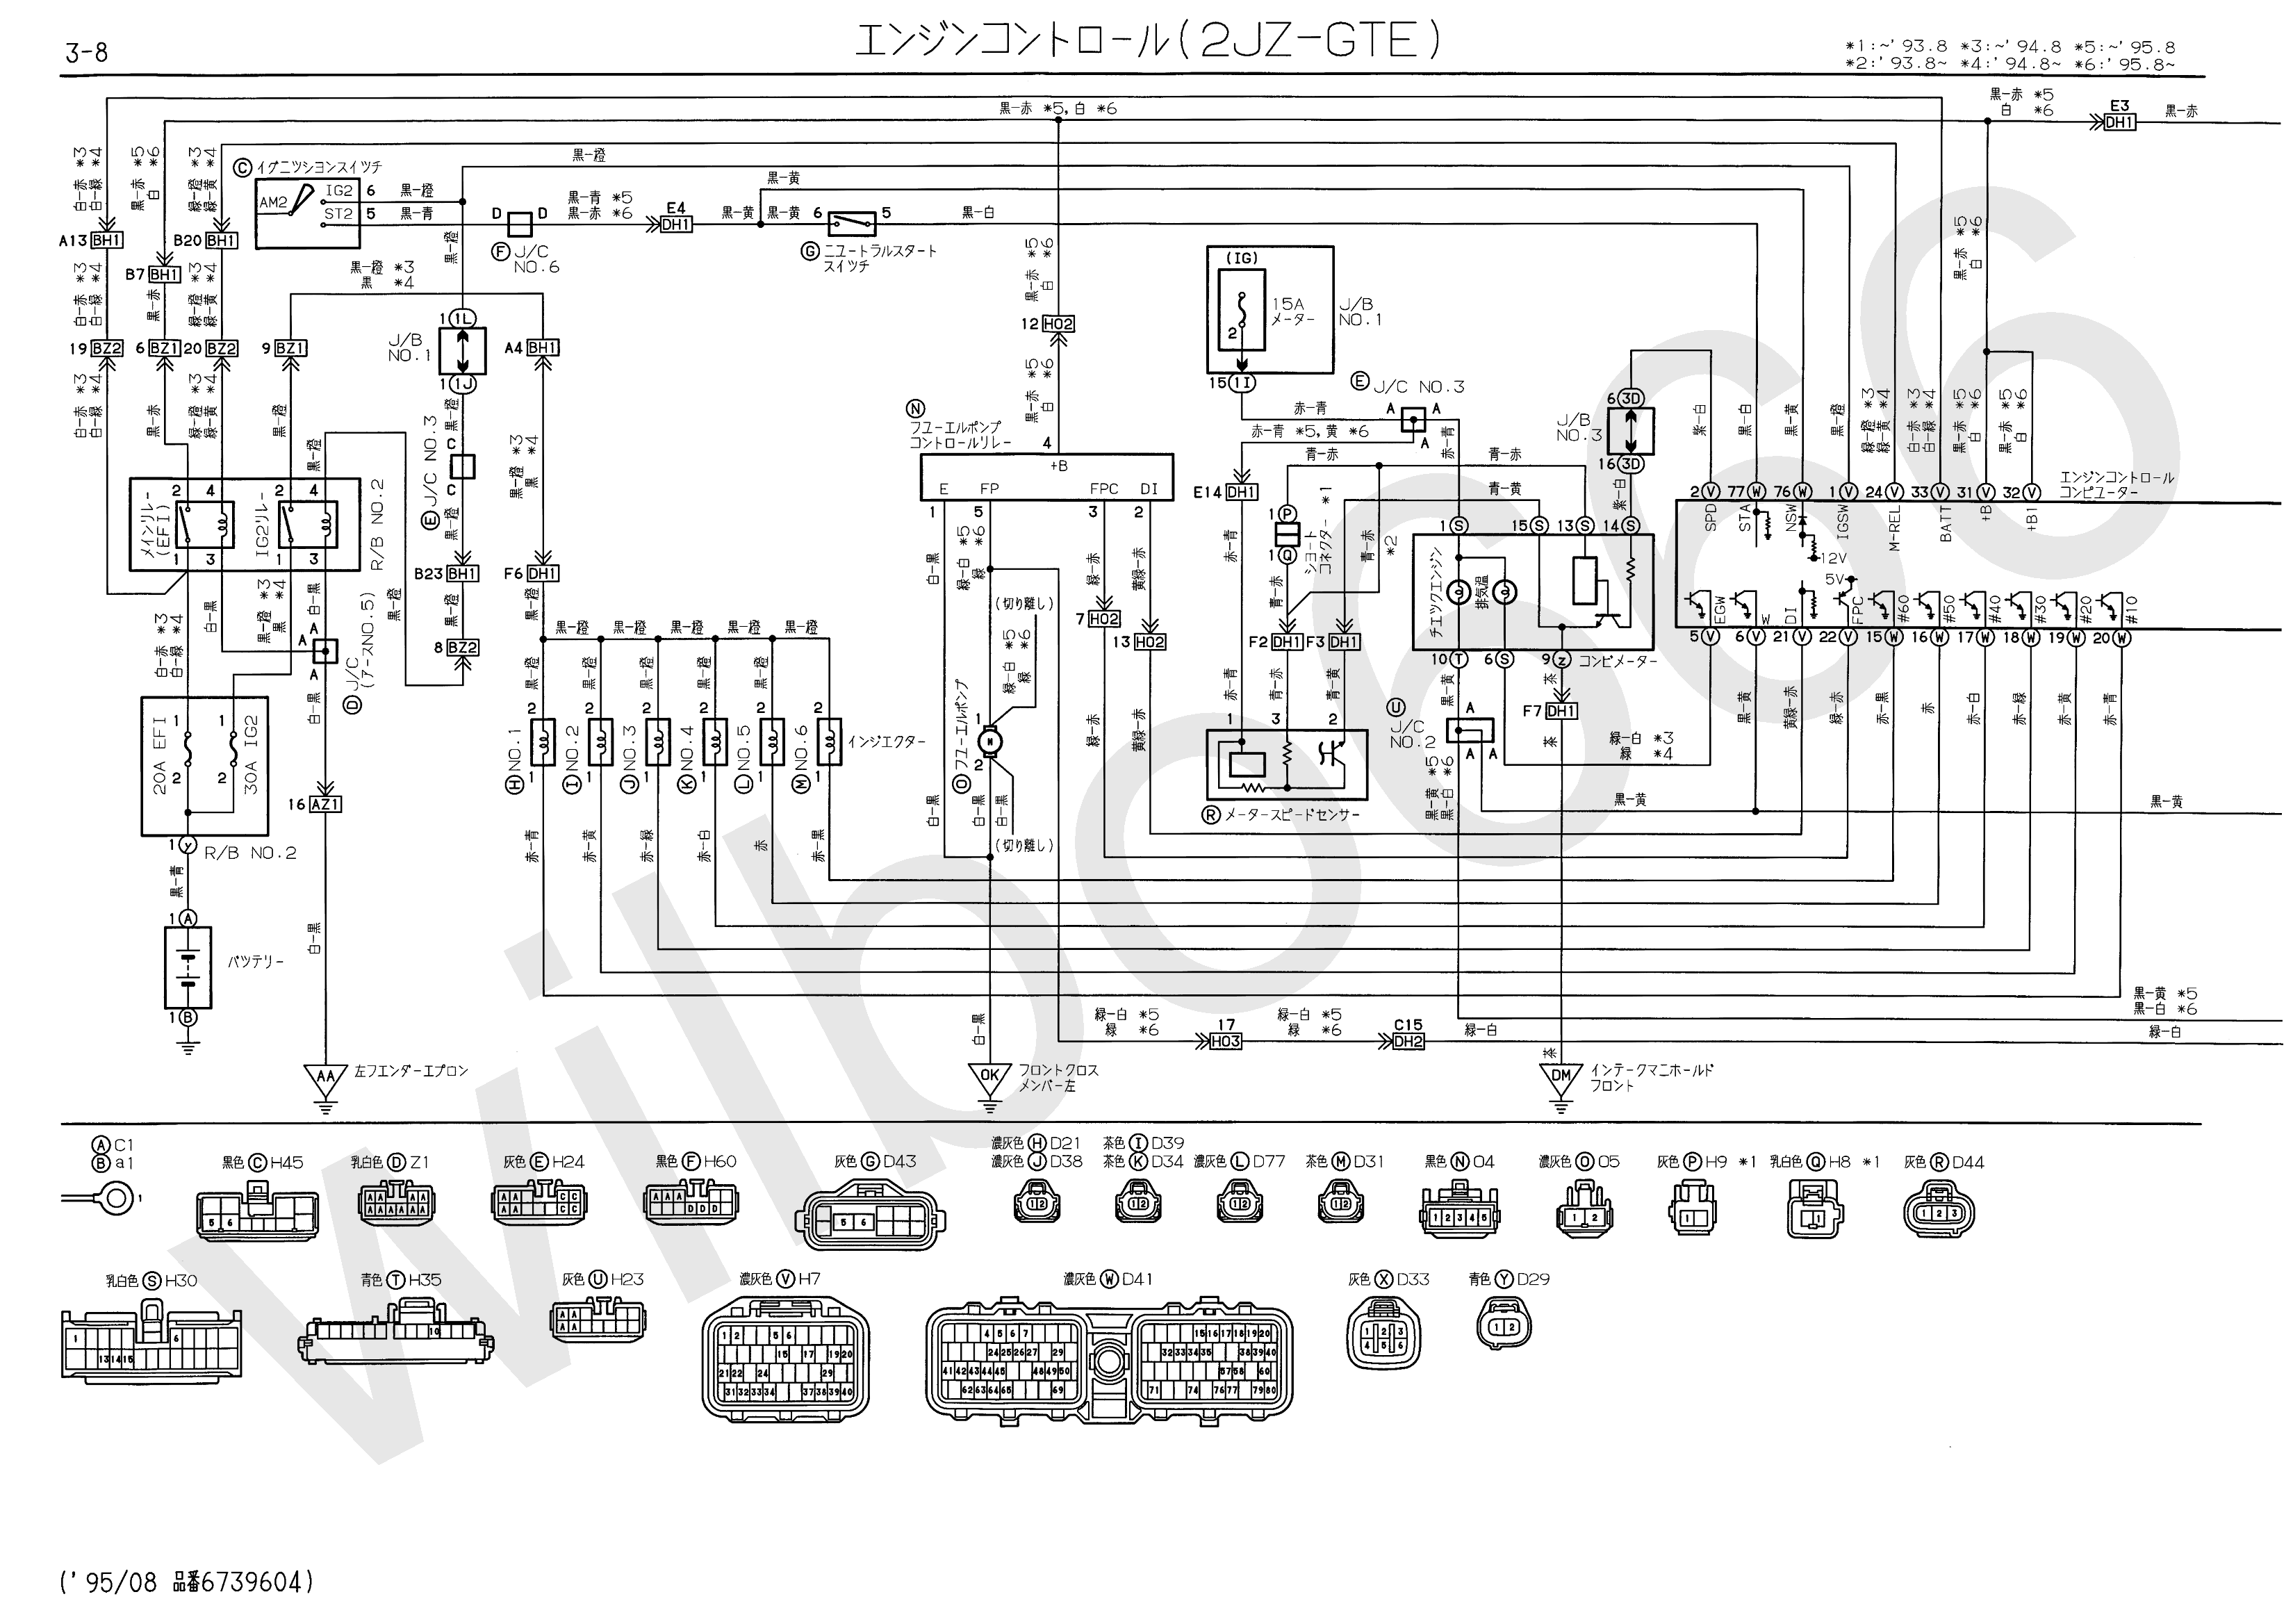 Wilbo666 2jz Gte Jzs147 Aristo Engine Wiring 1995 Ford Mustang 5 0 Diagram Toyota Diagrams